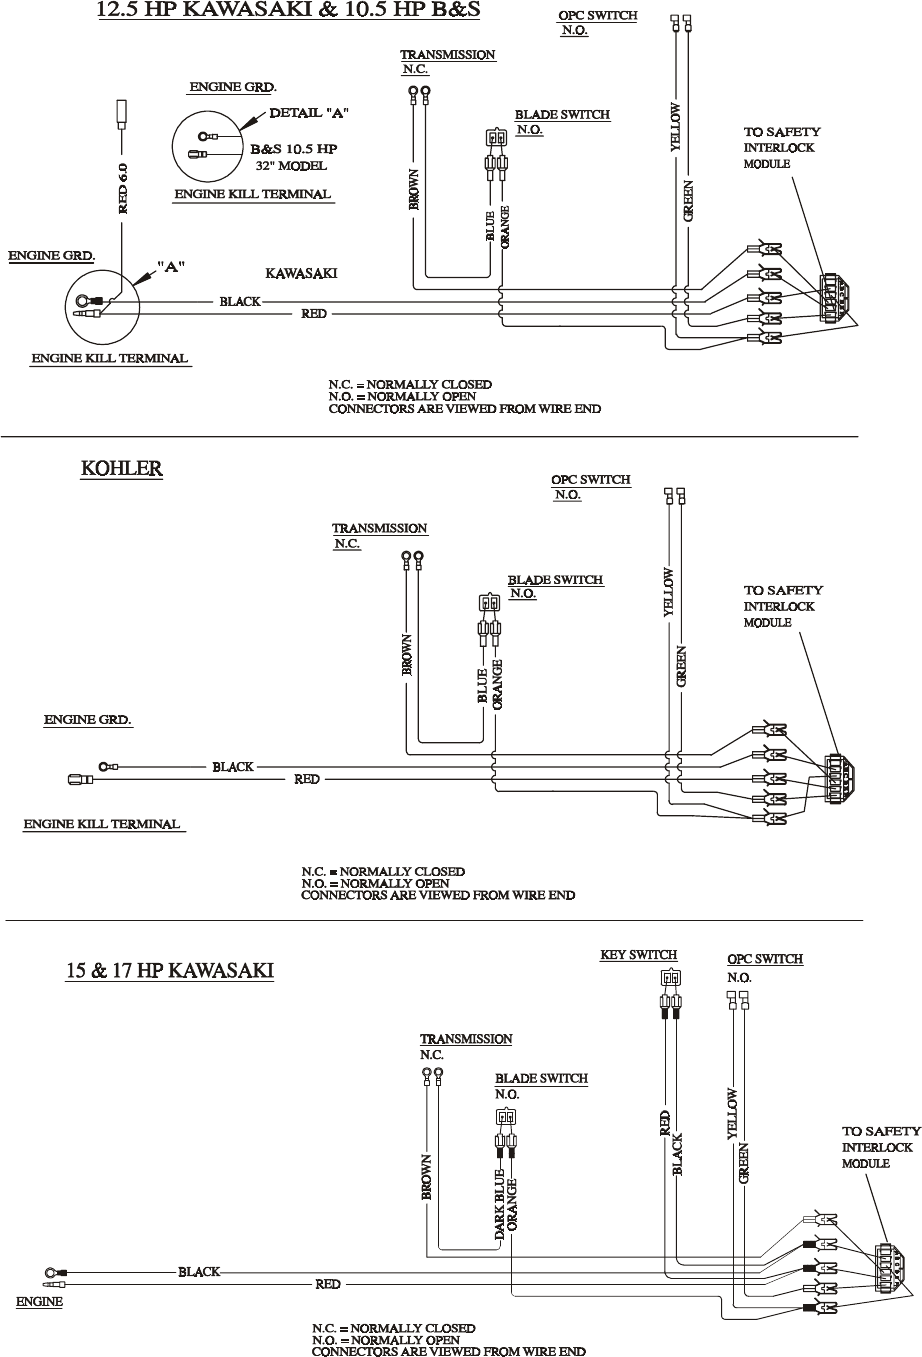 fa869892 6c99 4c24 afcd a612459af1d0 bg27 page 39 of exmark lawn mower metro user guide manualsonline com exmark wiring diagram at sewacar.co